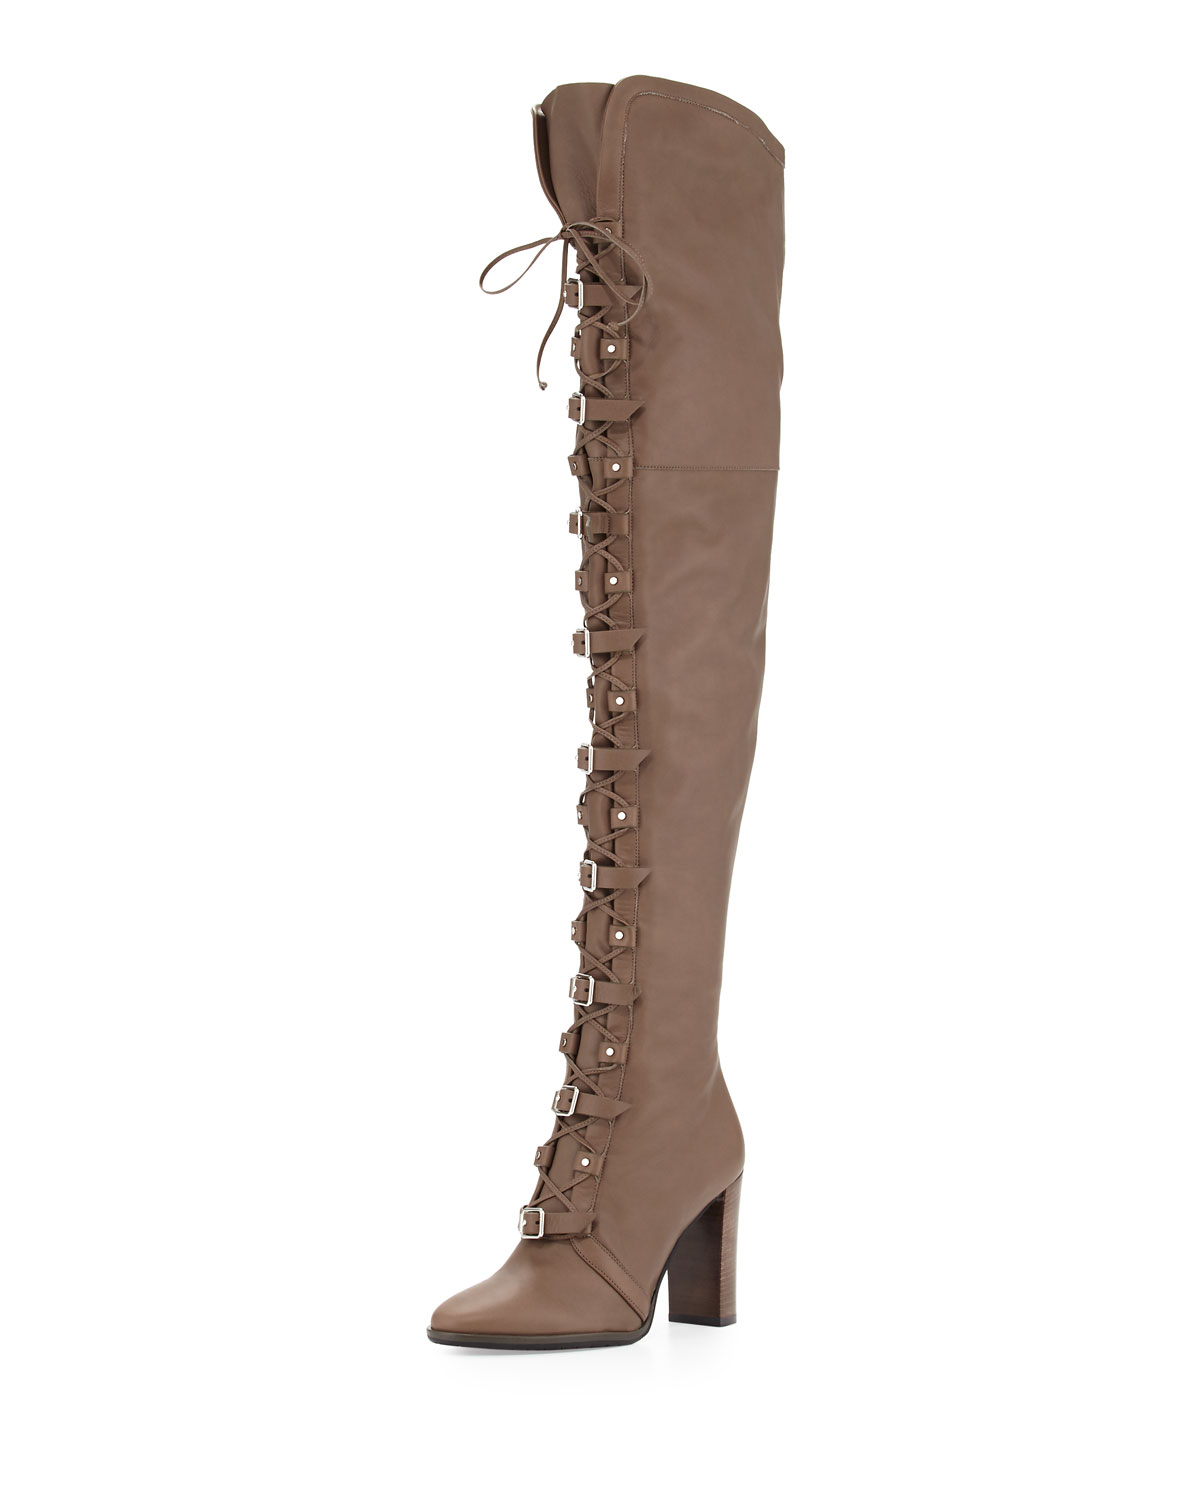 76c0998b74db Jimmy Choo Maloy Leather 95mm Over-the-Knee Boot